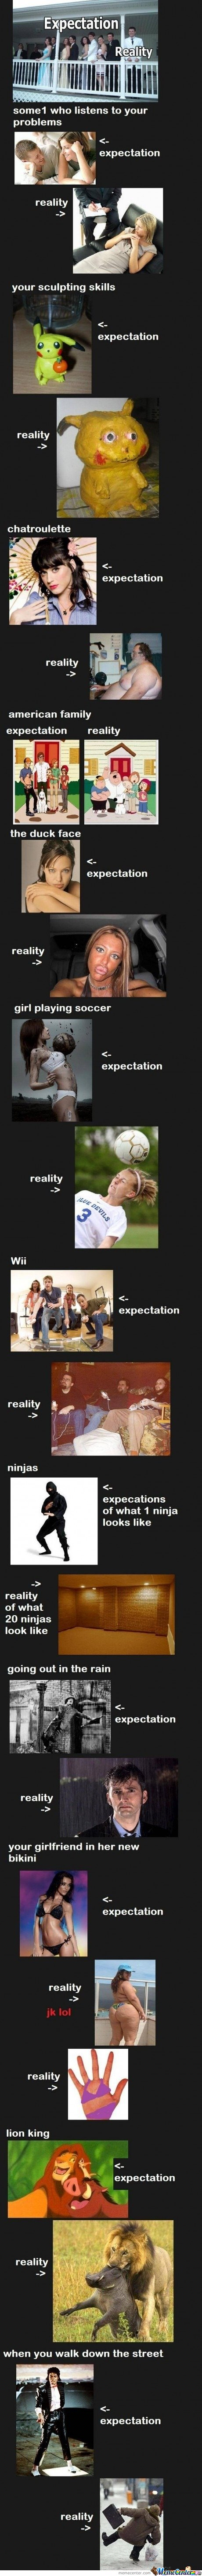 Expectations Vs Reality comp